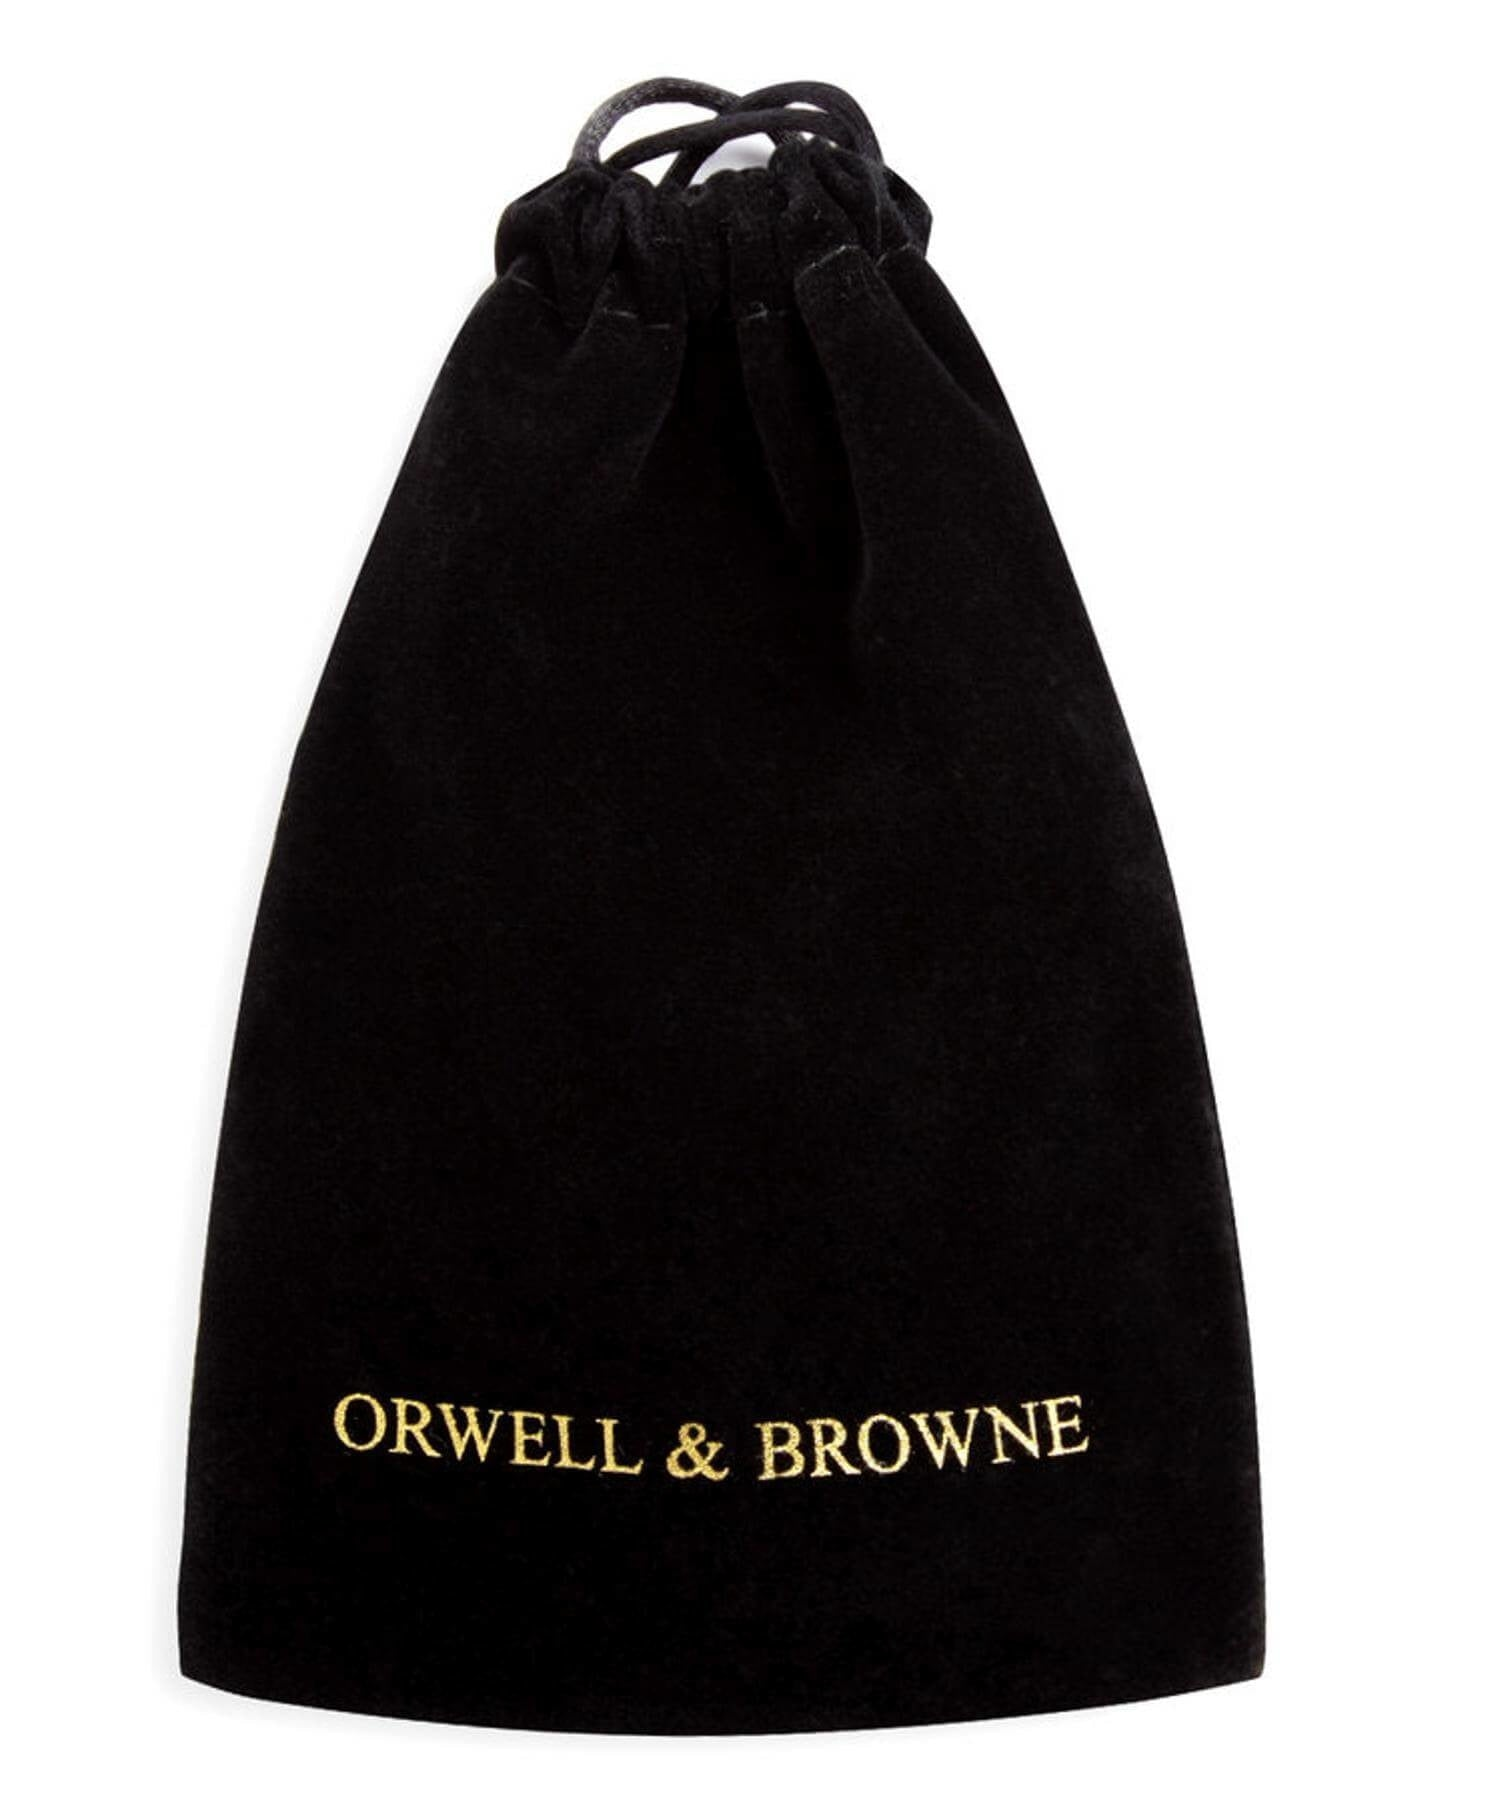 Donegal Tweed Pocket Square - Amber - [Orwell & Browne] - Mens Accessories - Irish Gifts